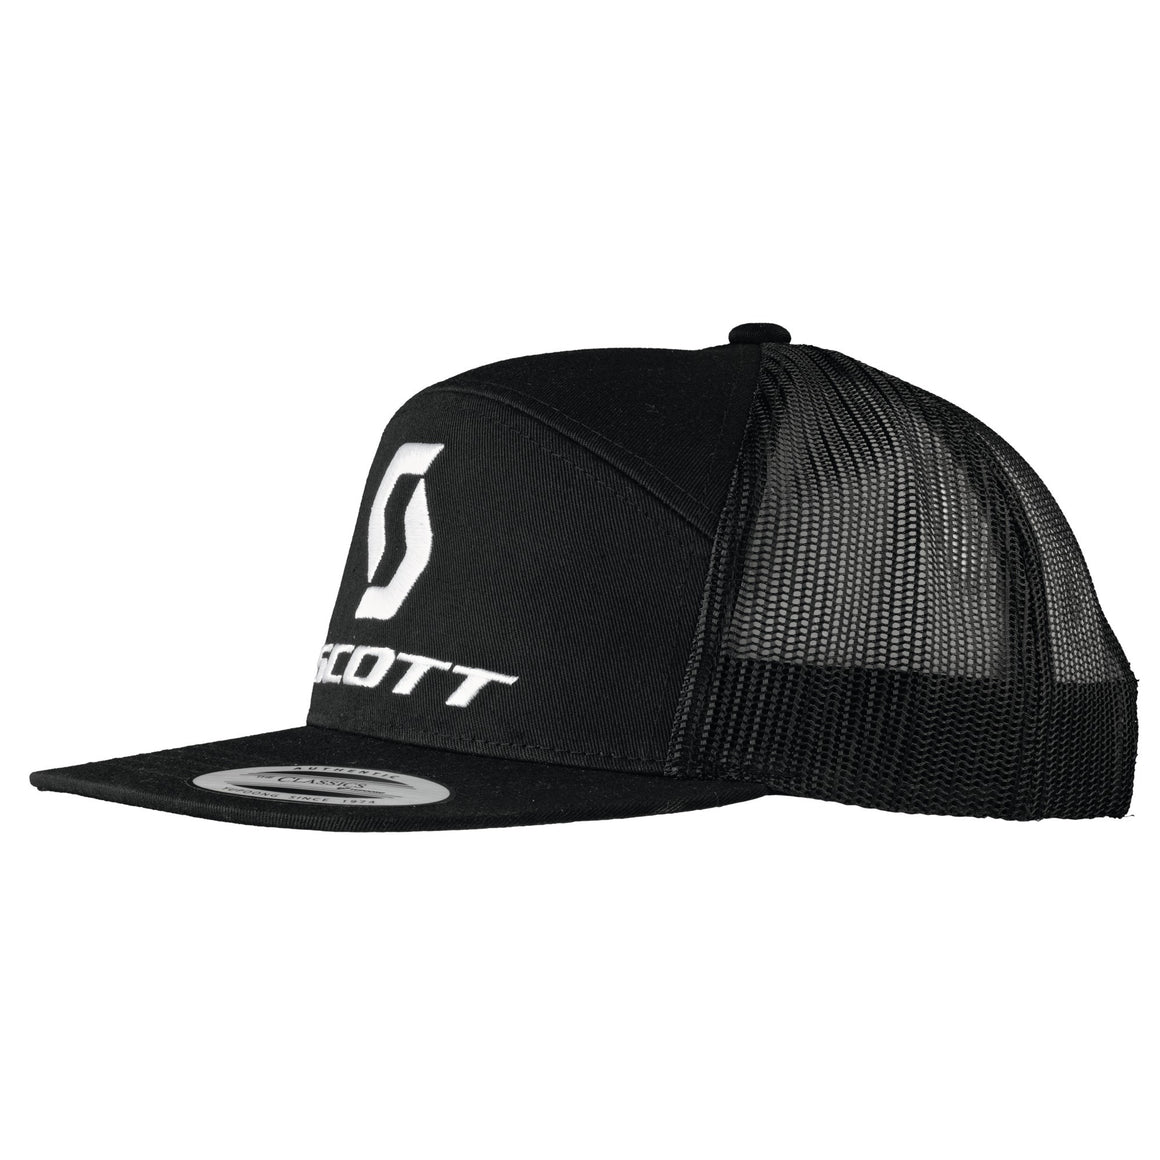 Scott Cap Snap Back